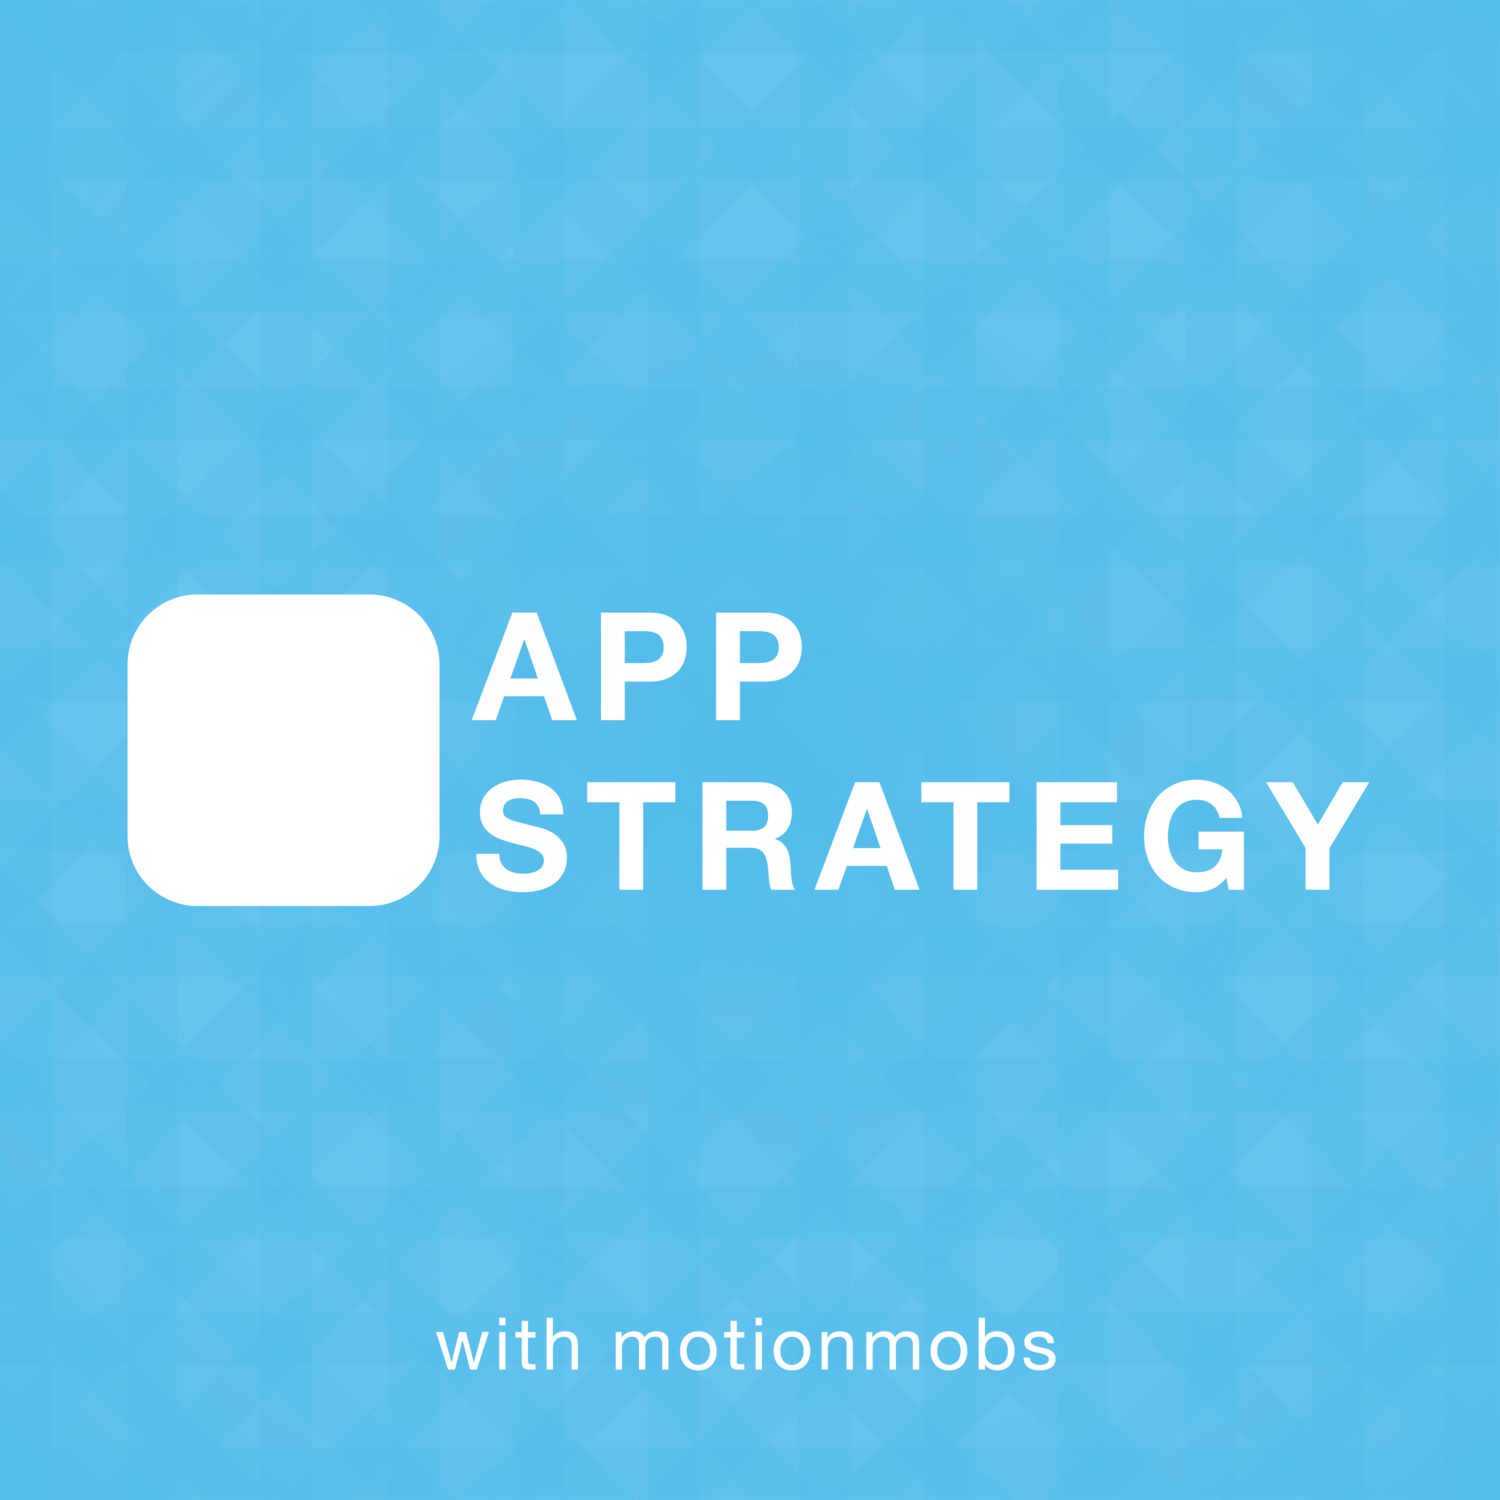 App Strategy - MotionMobs | Custom Apps with Bottom Line Results